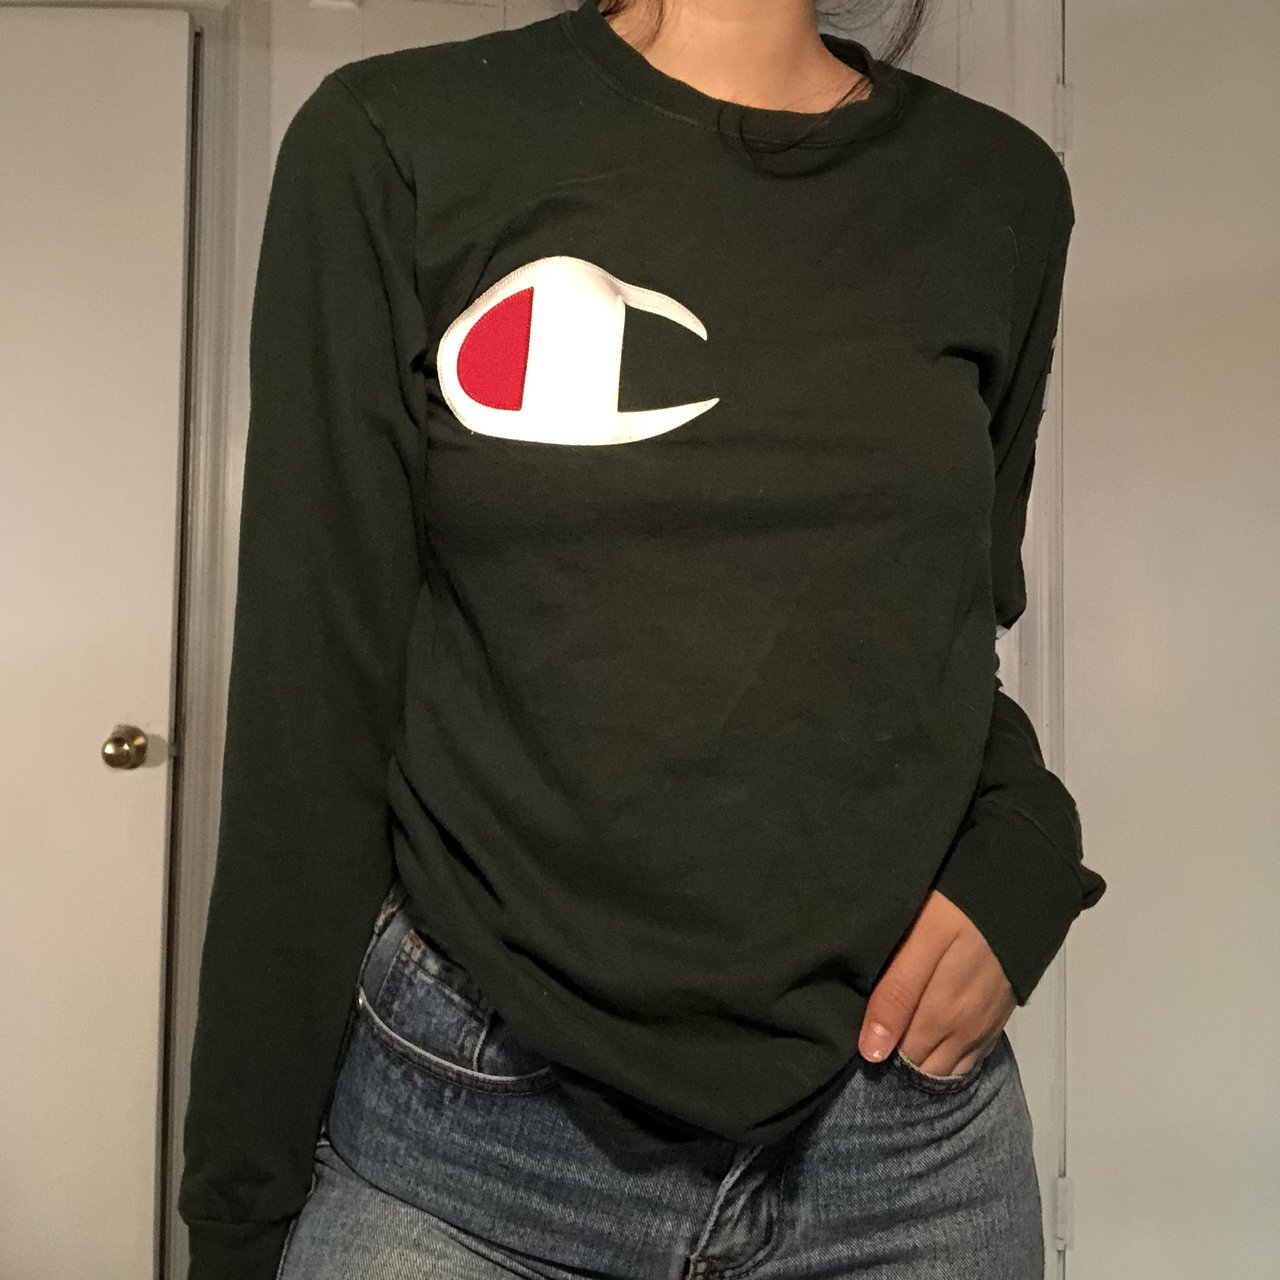 🤩 UO OLIVE CHAMPION LONG-SLEEVE 🤩 - Depop 9446df78ca0a